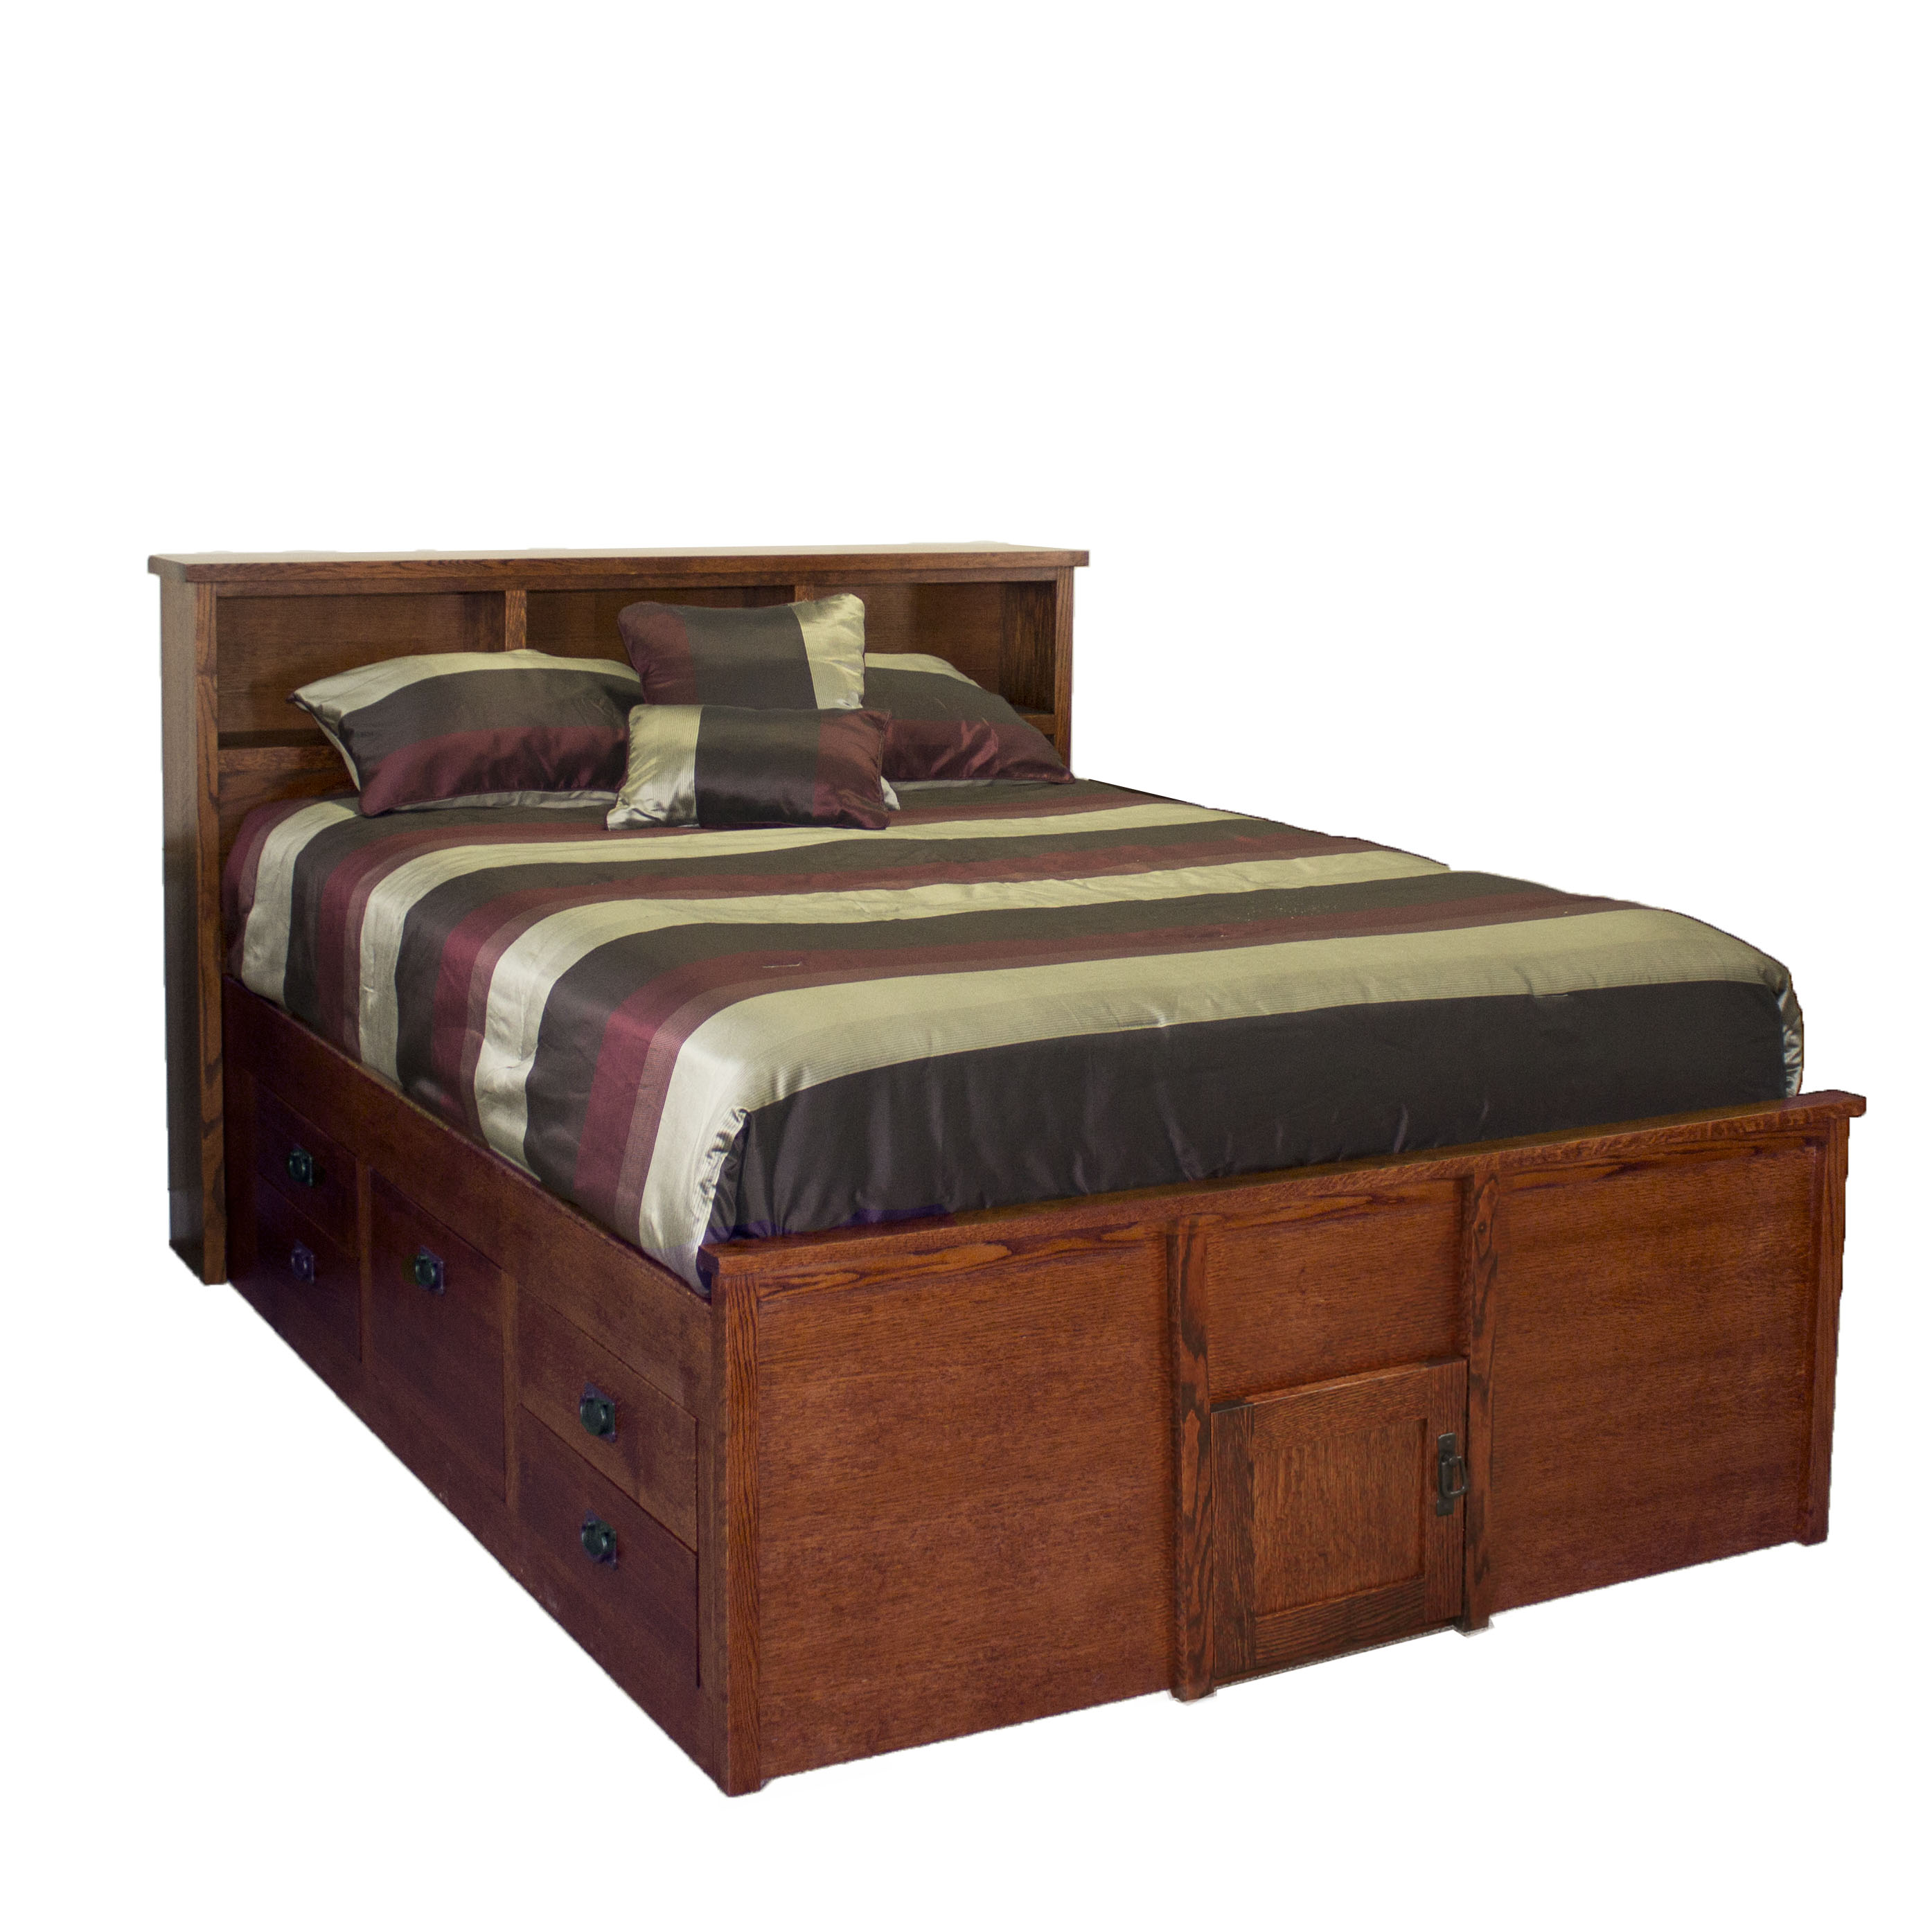 Queen Captains Bed w/ Storage Ftbd